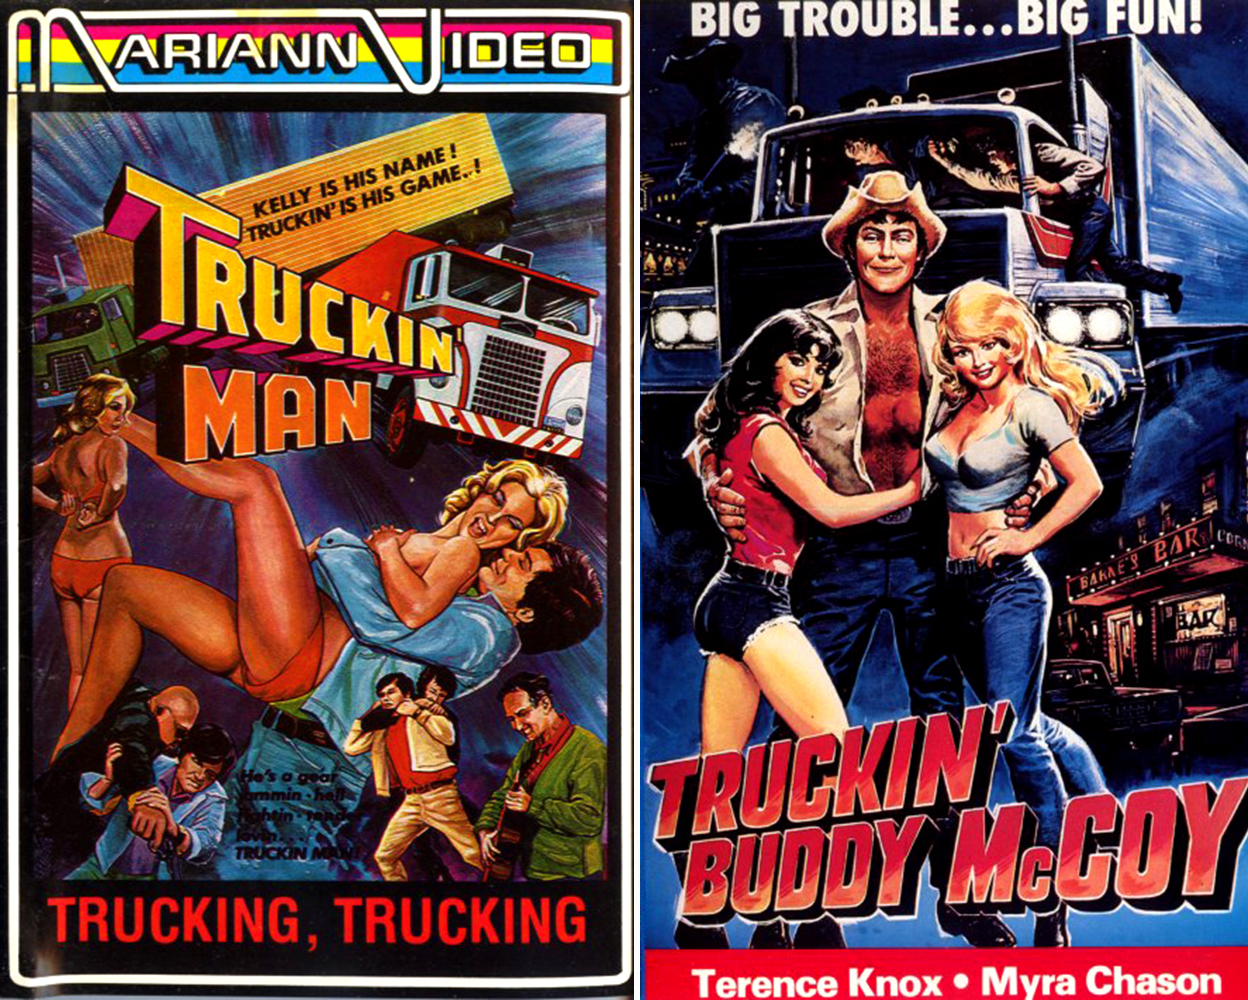 Trucking video cover art